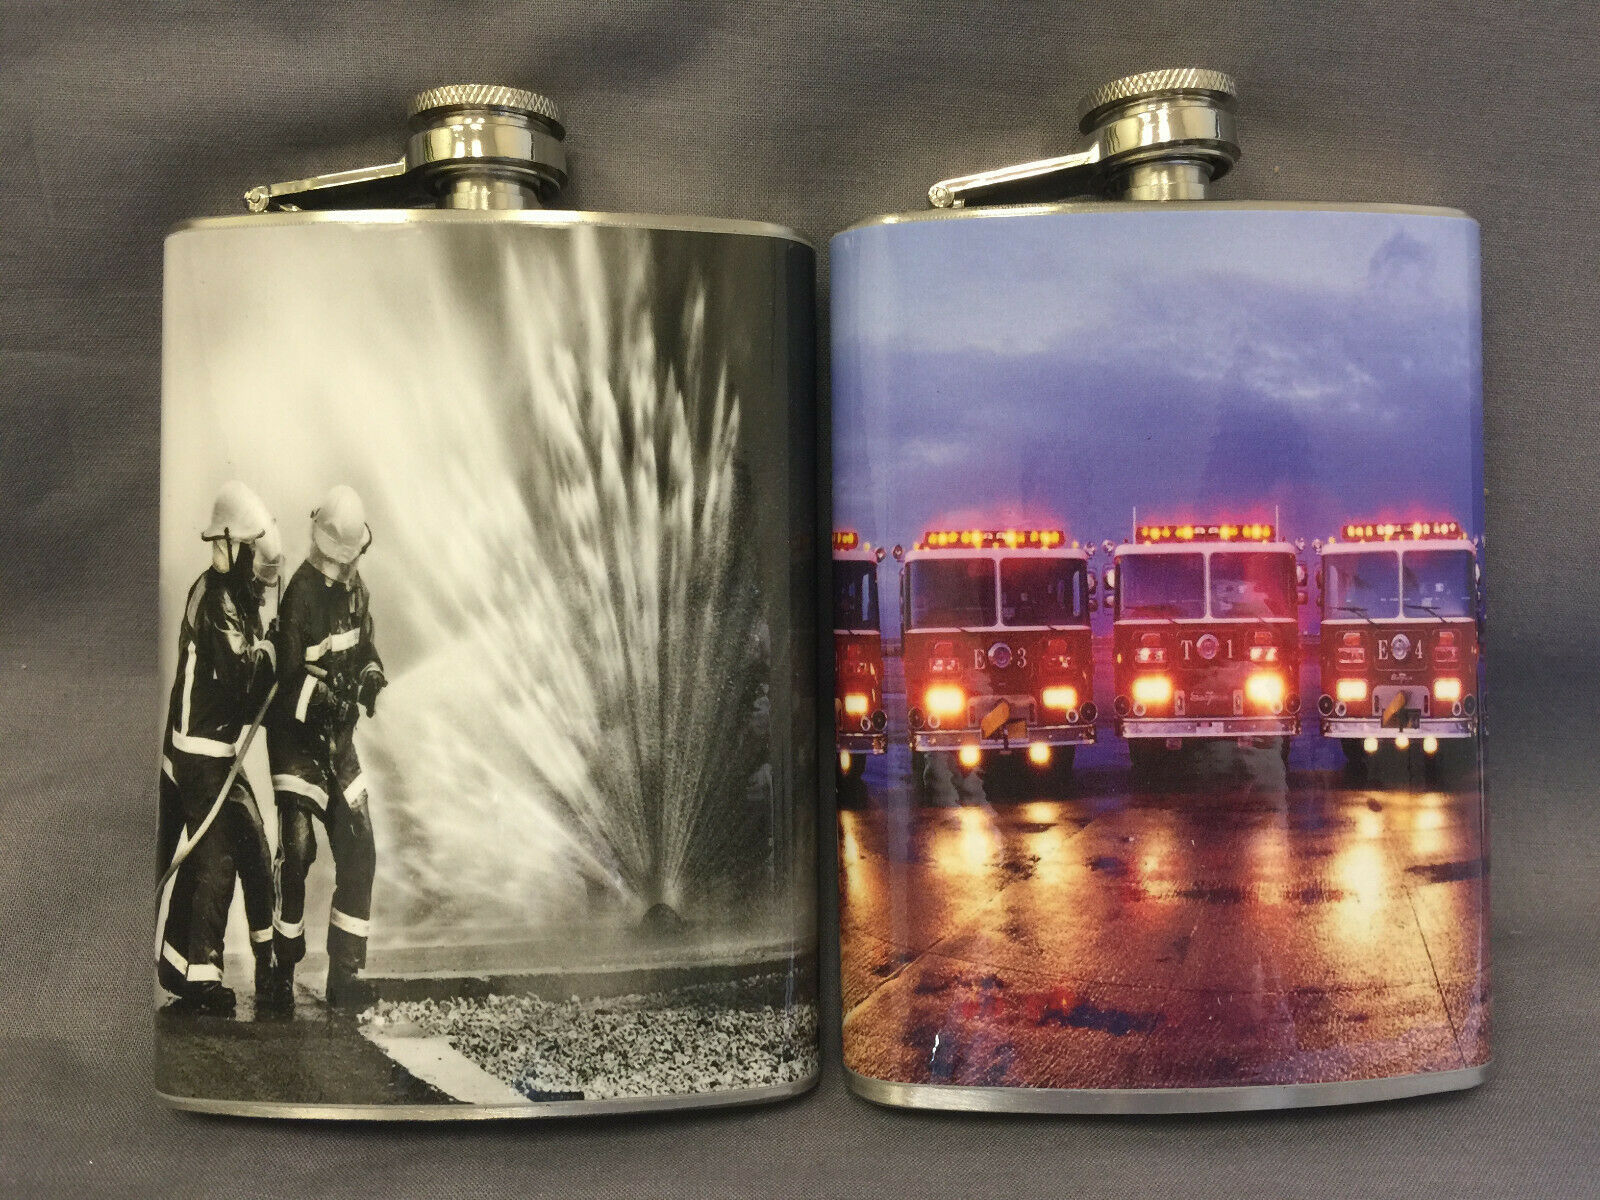 Set of 2 Firefighters D 3 & D 7 Flasks 8oz Stainless Steel Drinking Whiskey